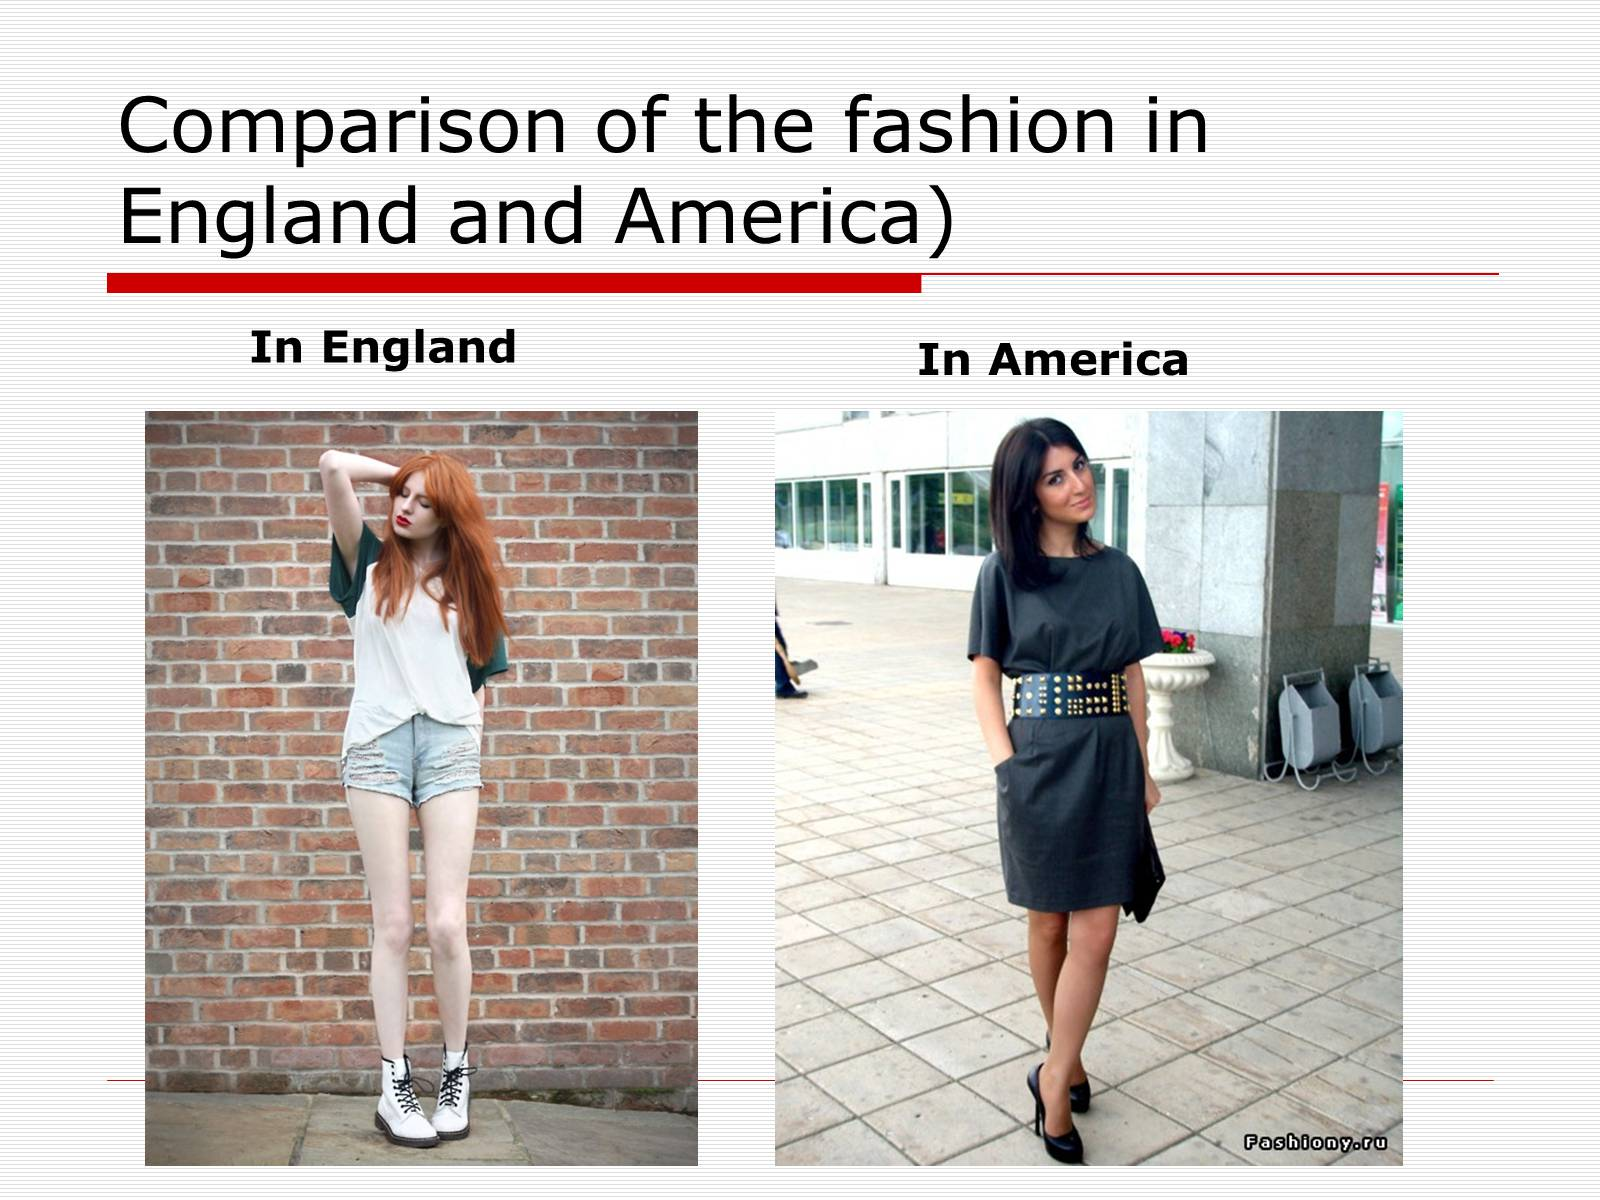 Презентація на тему «Comparison of the fashion in England and America» - Слайд #36